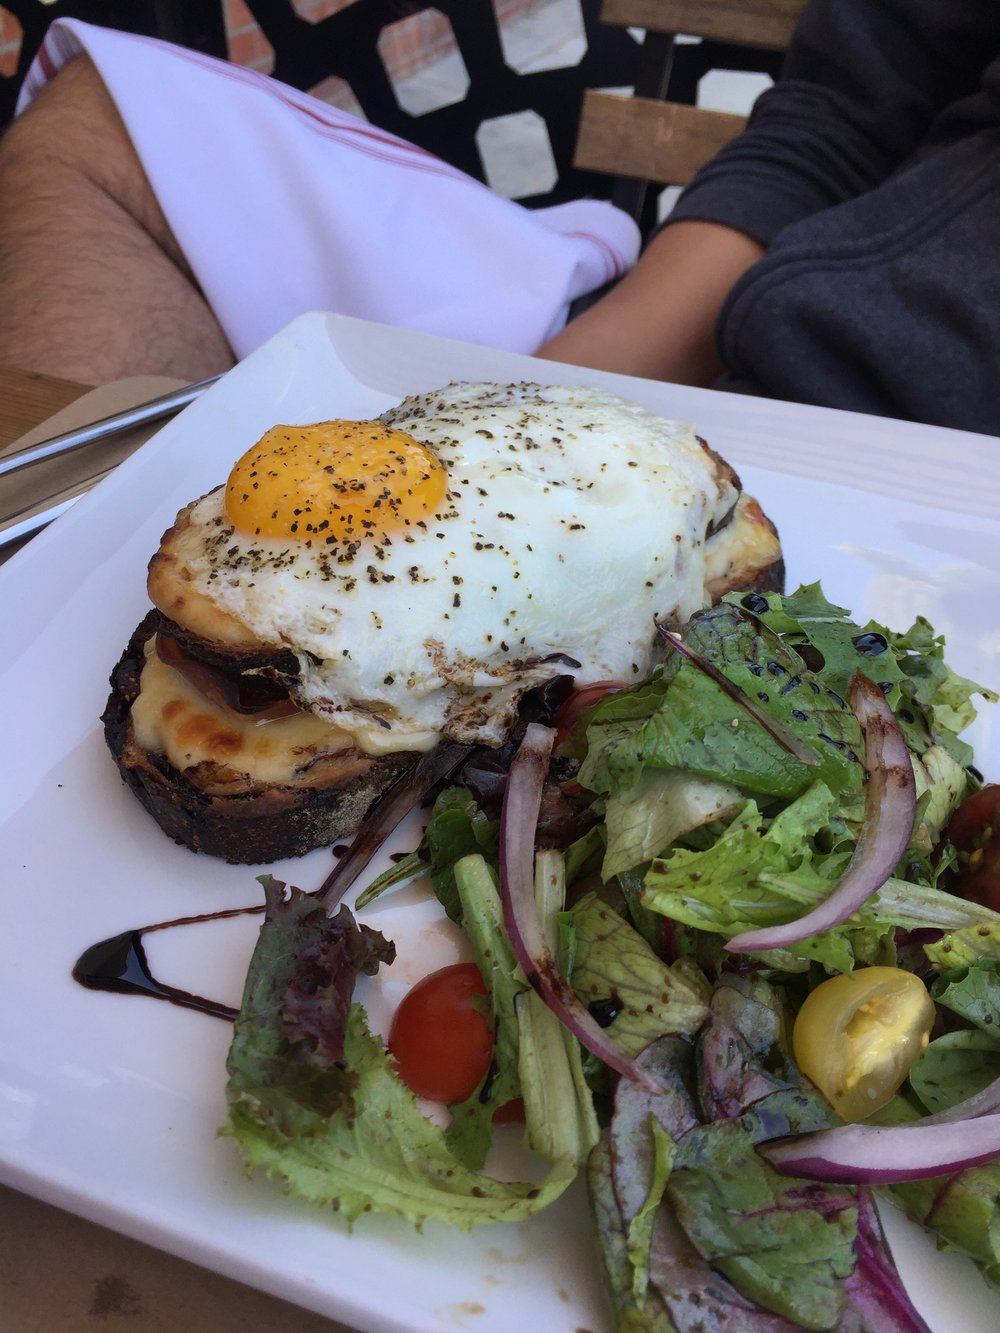 brunch north park et voila croque madame bloody mary obsessed.jpg